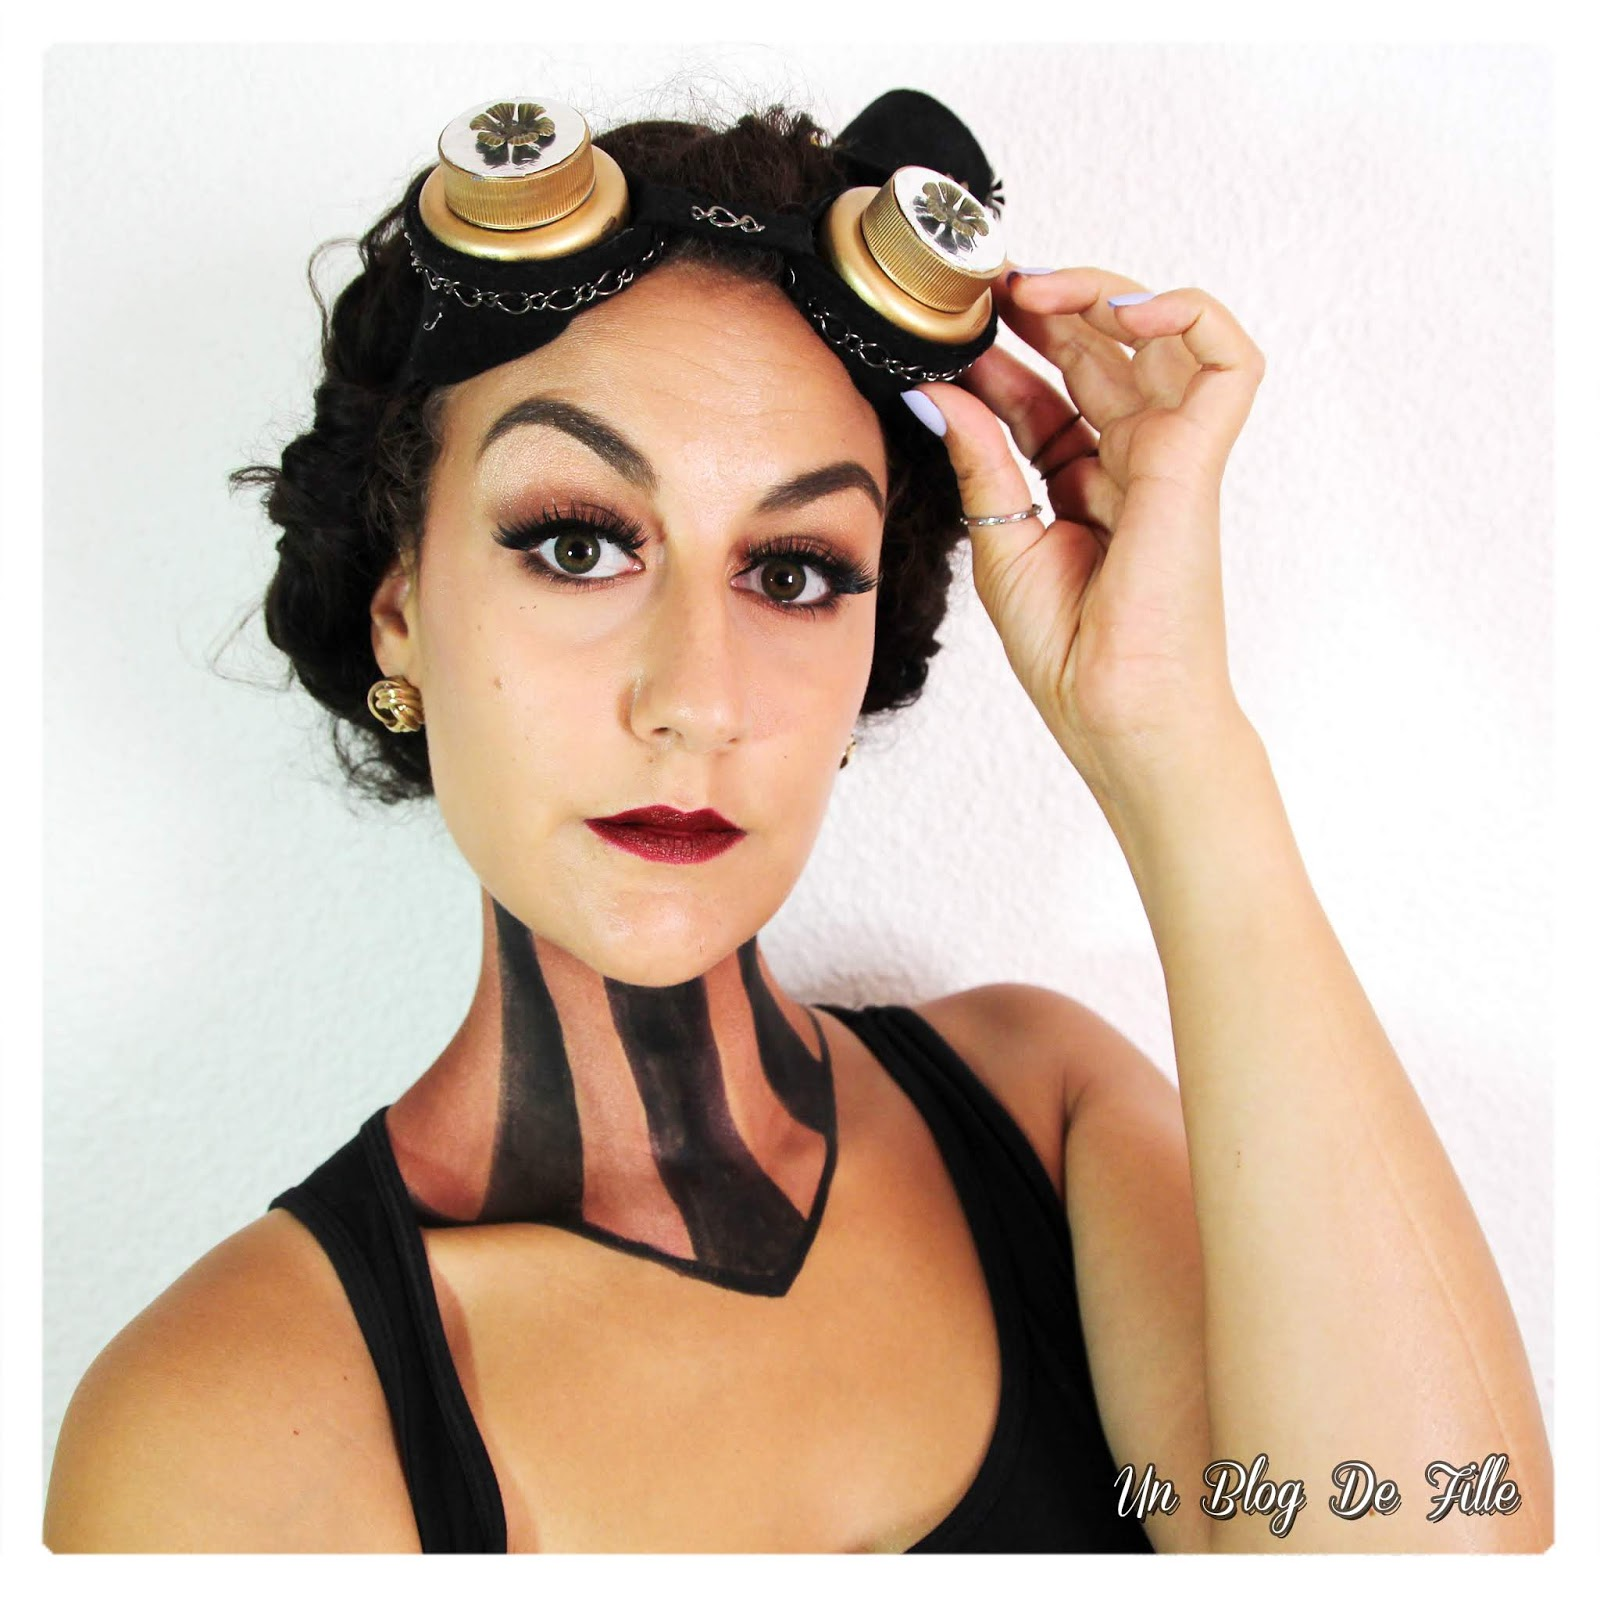 http://www.unblogdefille.fr/2018/09/maquillage-artistique-steampunk-girl-a.html